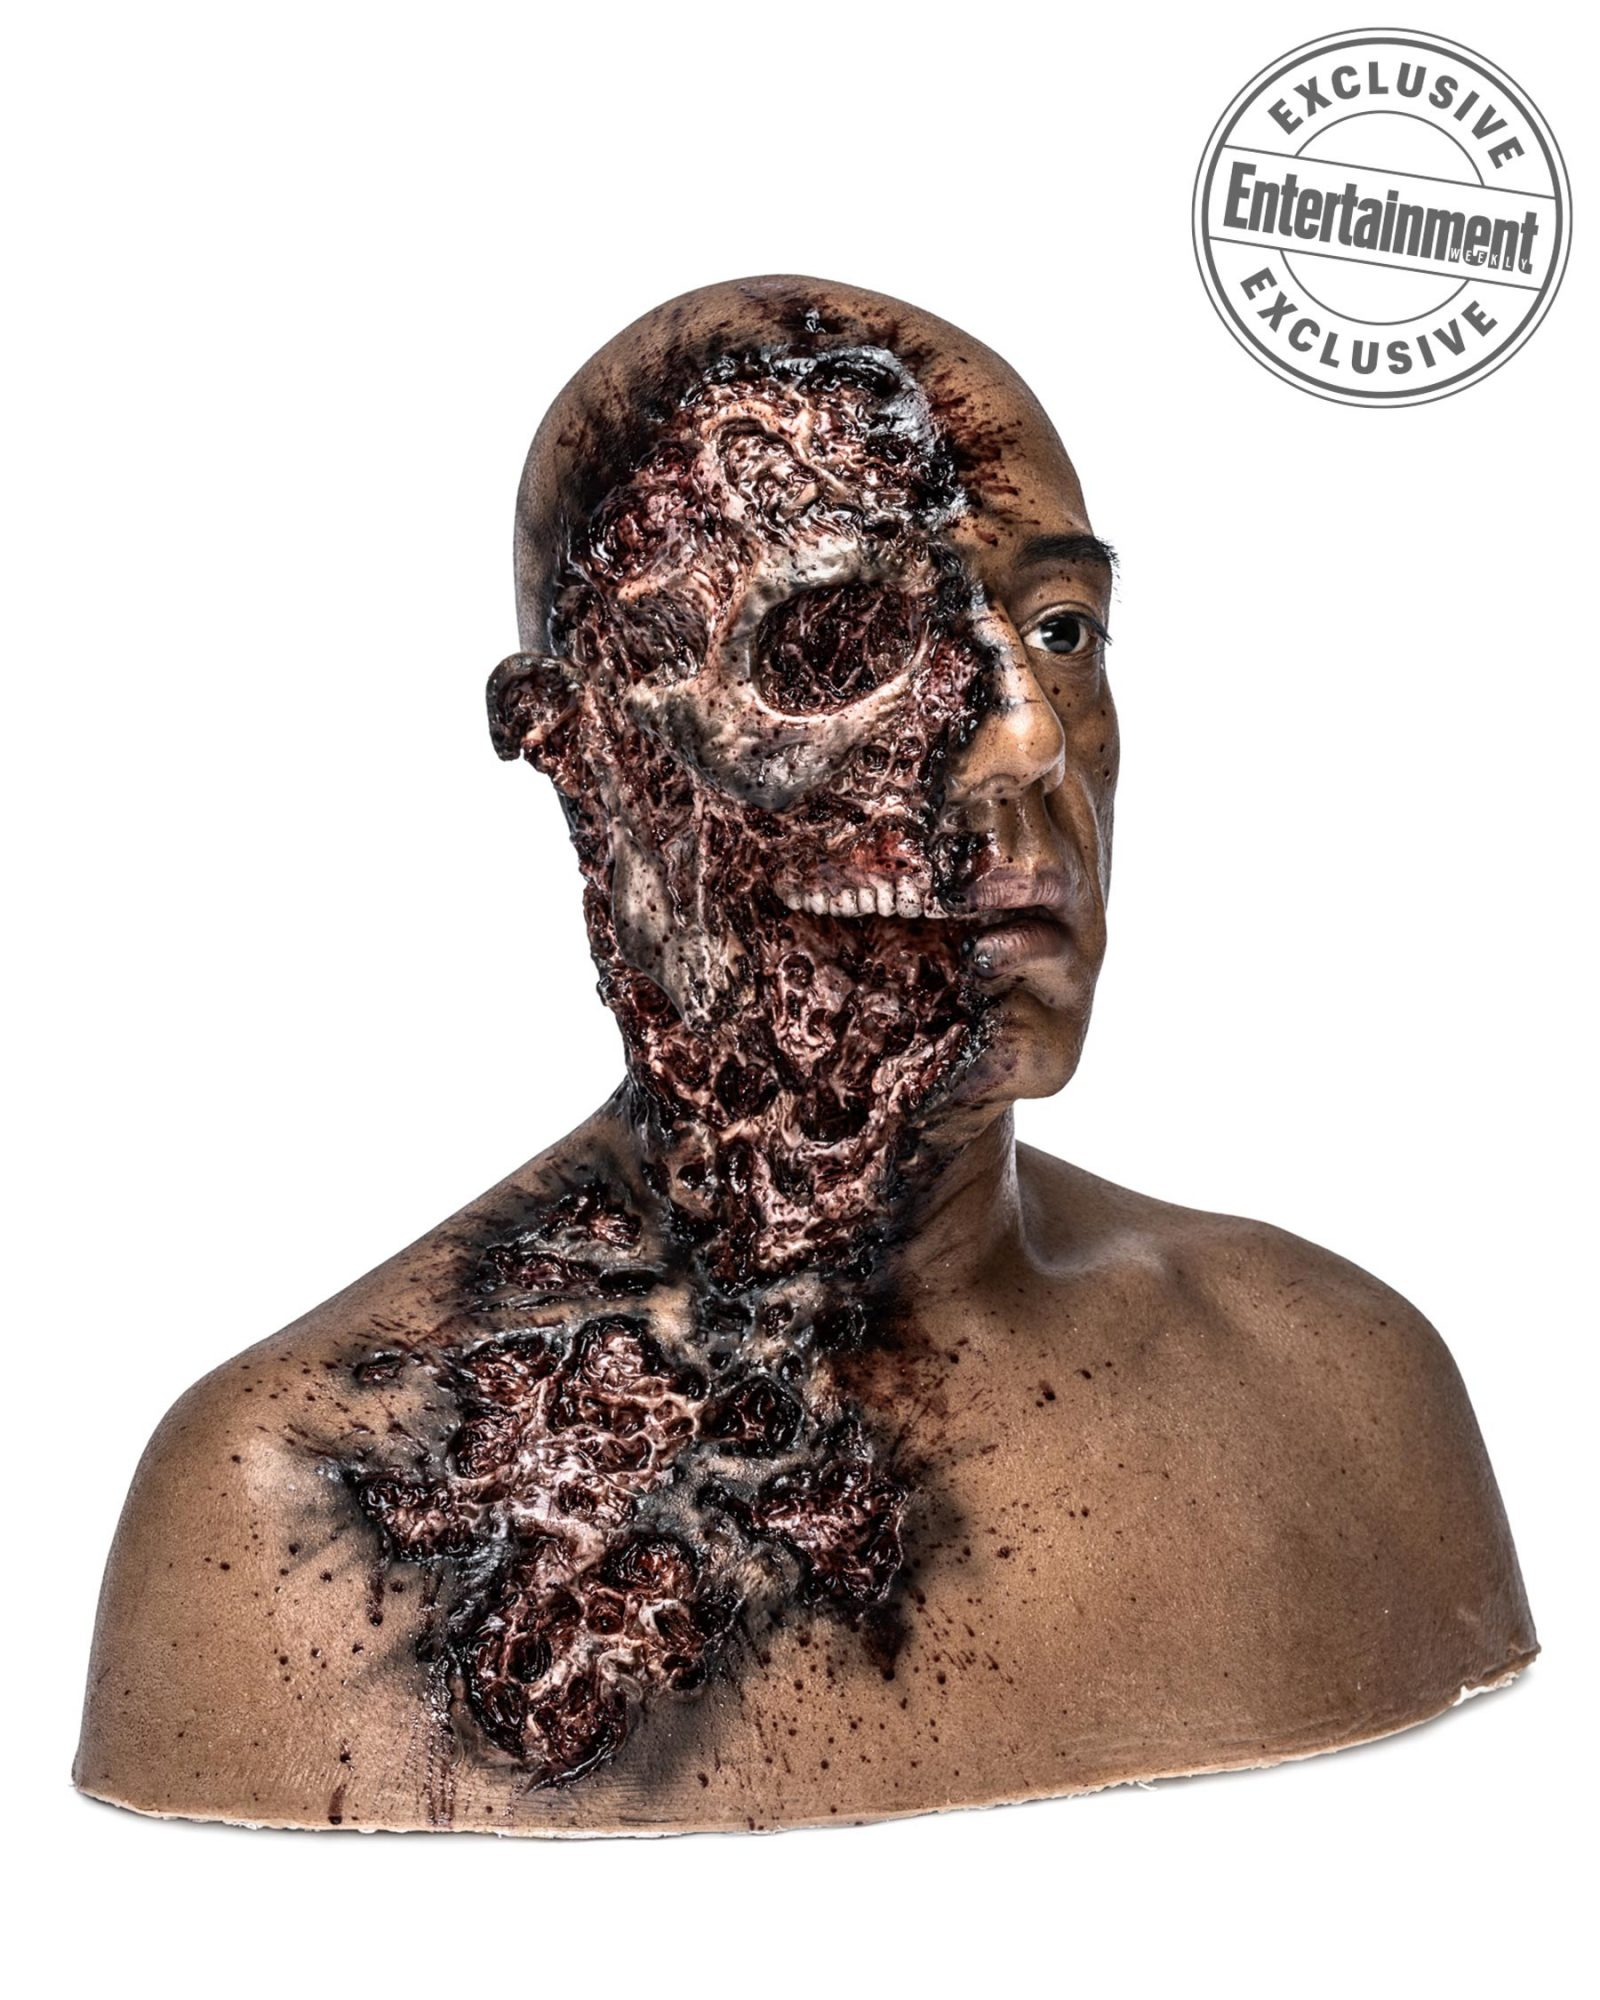 The half-bombed head of Gustavo Fring